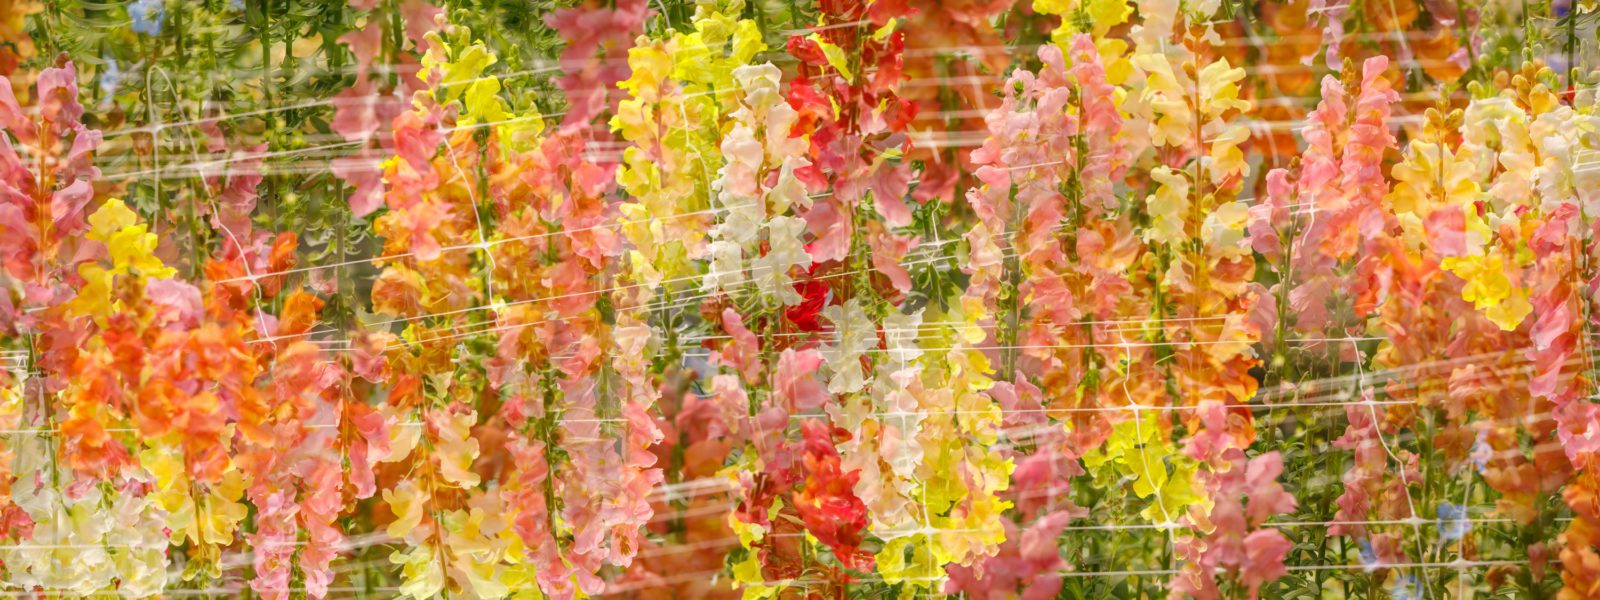 Red, pink, and yellow flowers at Willow Wisp Farm.